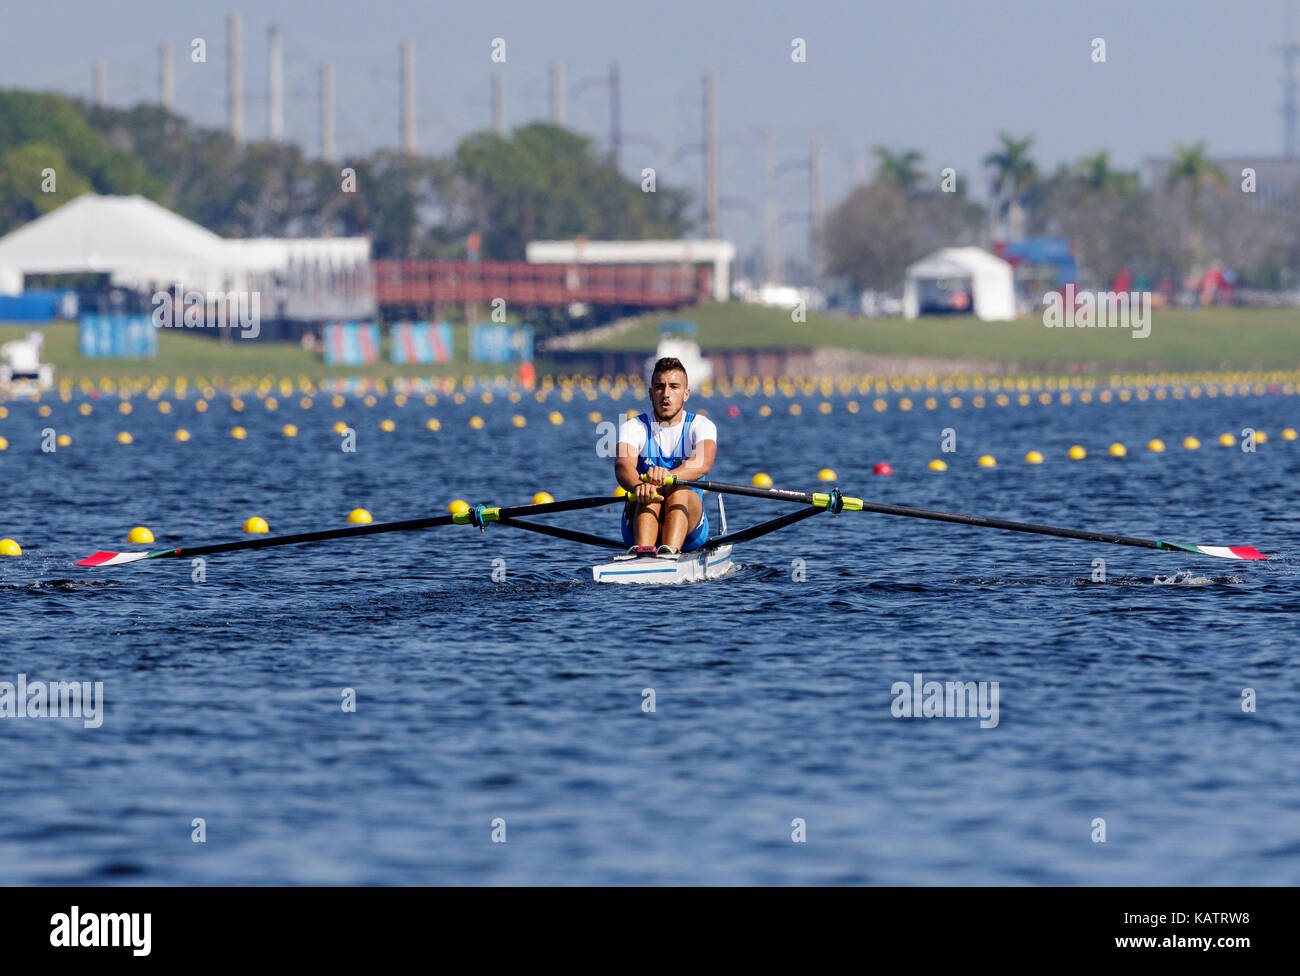 Sarasota-Bradenton, Florida, USA. 27th Sep, 2017. Salvatore Monfrecola of Team Italy during the (M1x) Men's Single Sculls - Semifinal in the World Rowing Championships being held at Nathan Benderson Park in Sarasota-Bradenton, Florida. Del Mecum/CSM/Alamy Live News Stock Photo